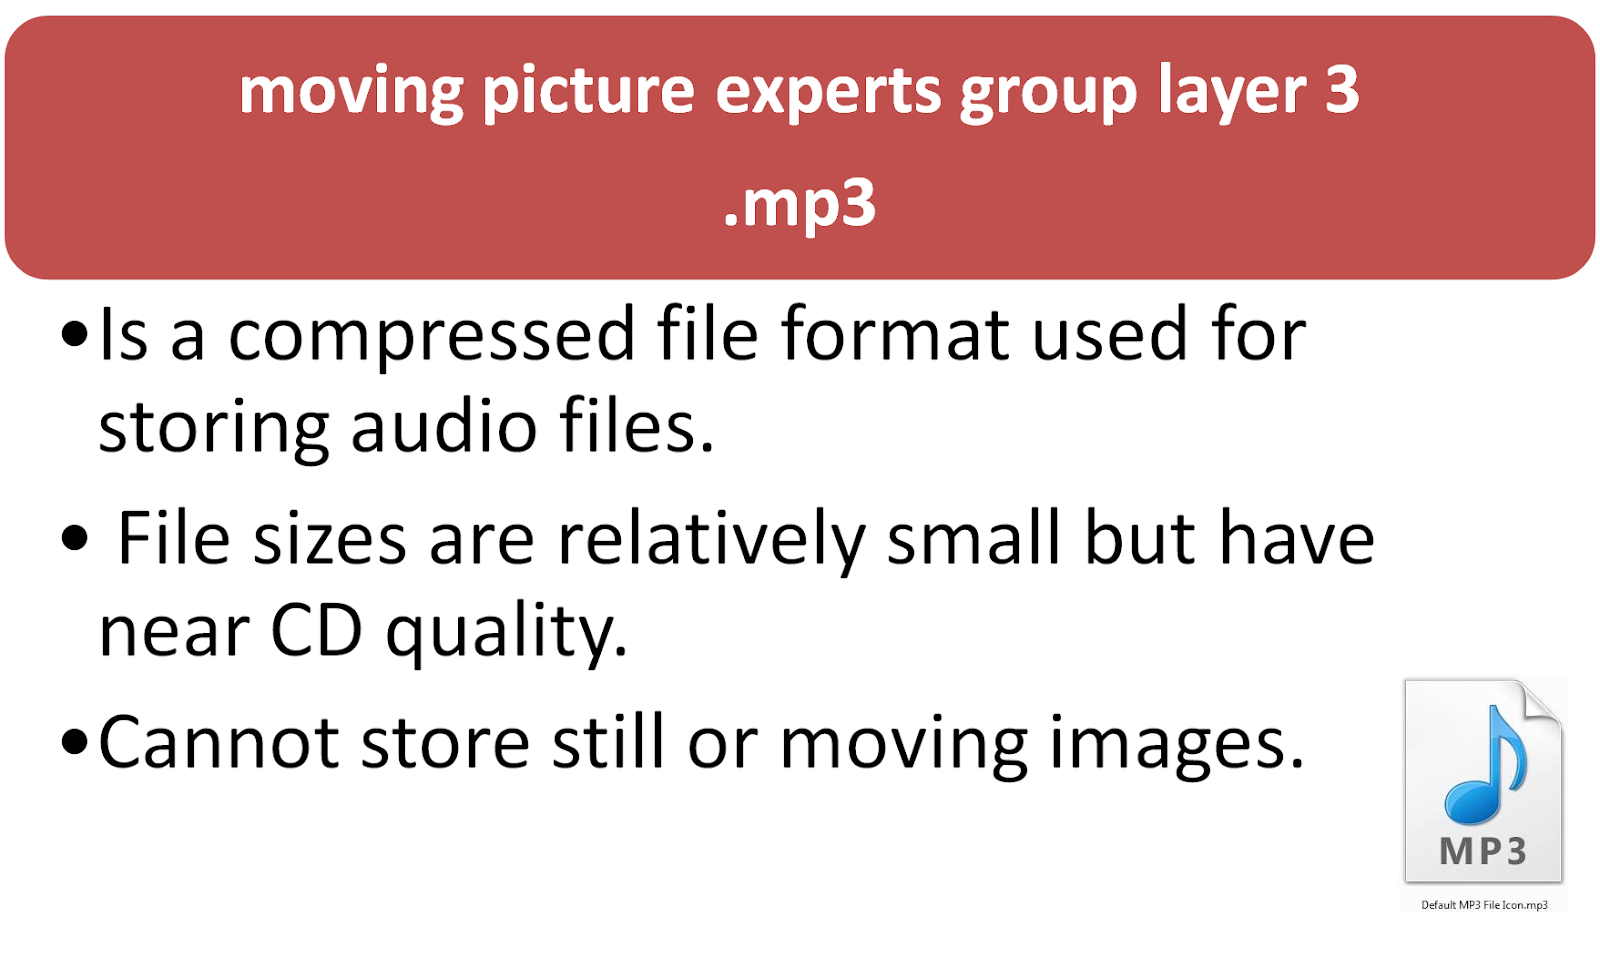 the moving picture experts group layer 3 an mp3 analysis The mpeg standards are an evolving set of standards for video and audio compression developed by the moving picture experts group  analysis grc  mpeg-3.